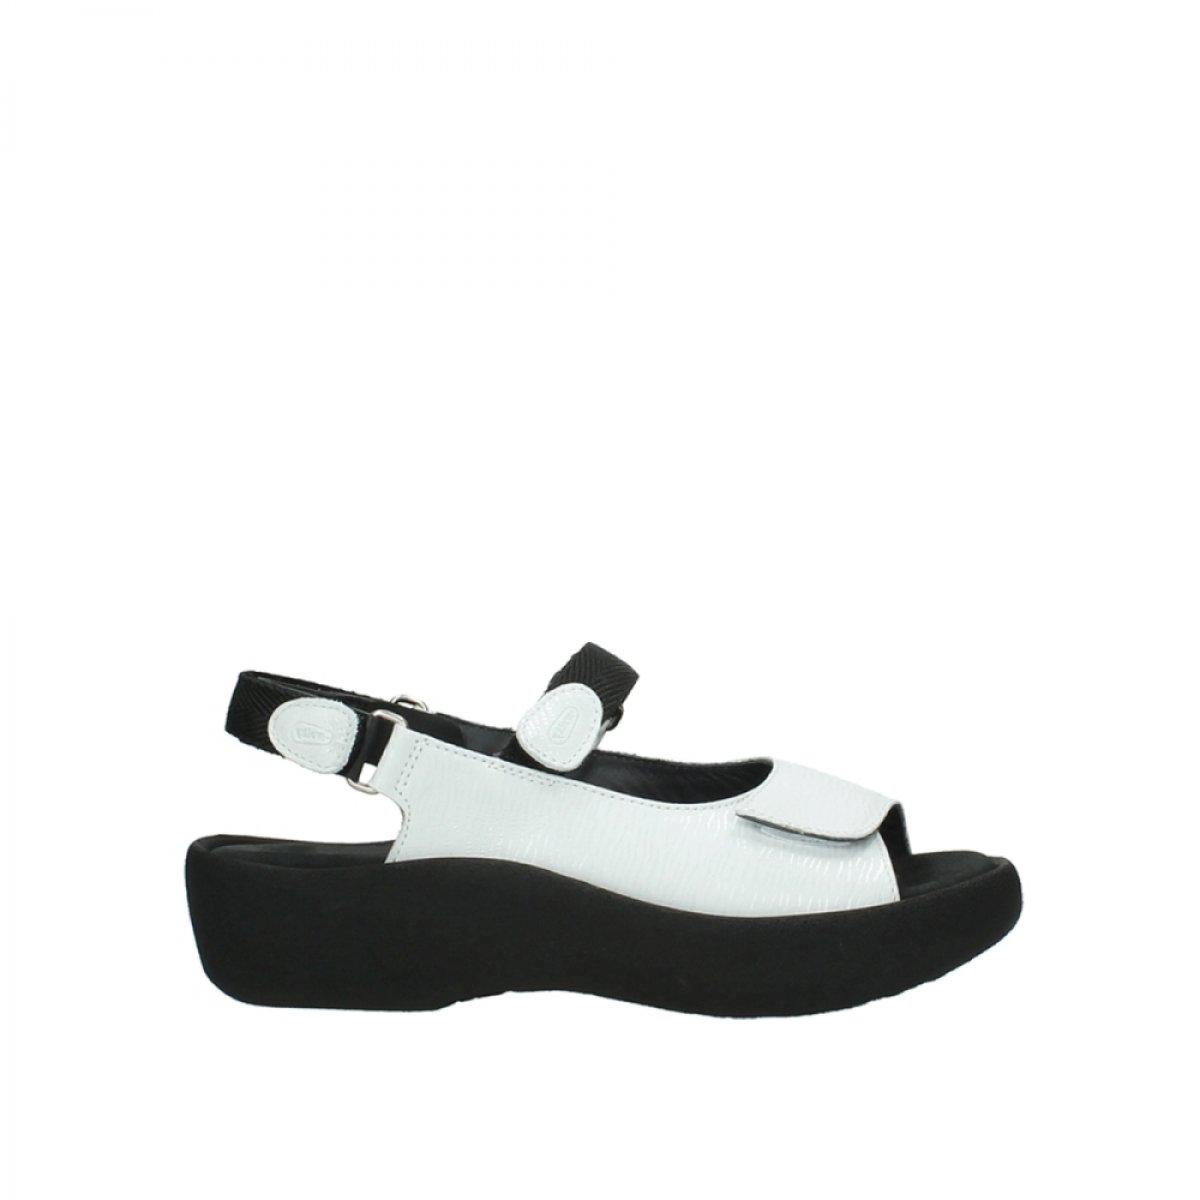 Wolky Comfort Jewel B06W2G2SY9 42 M EU|70100 White Canals